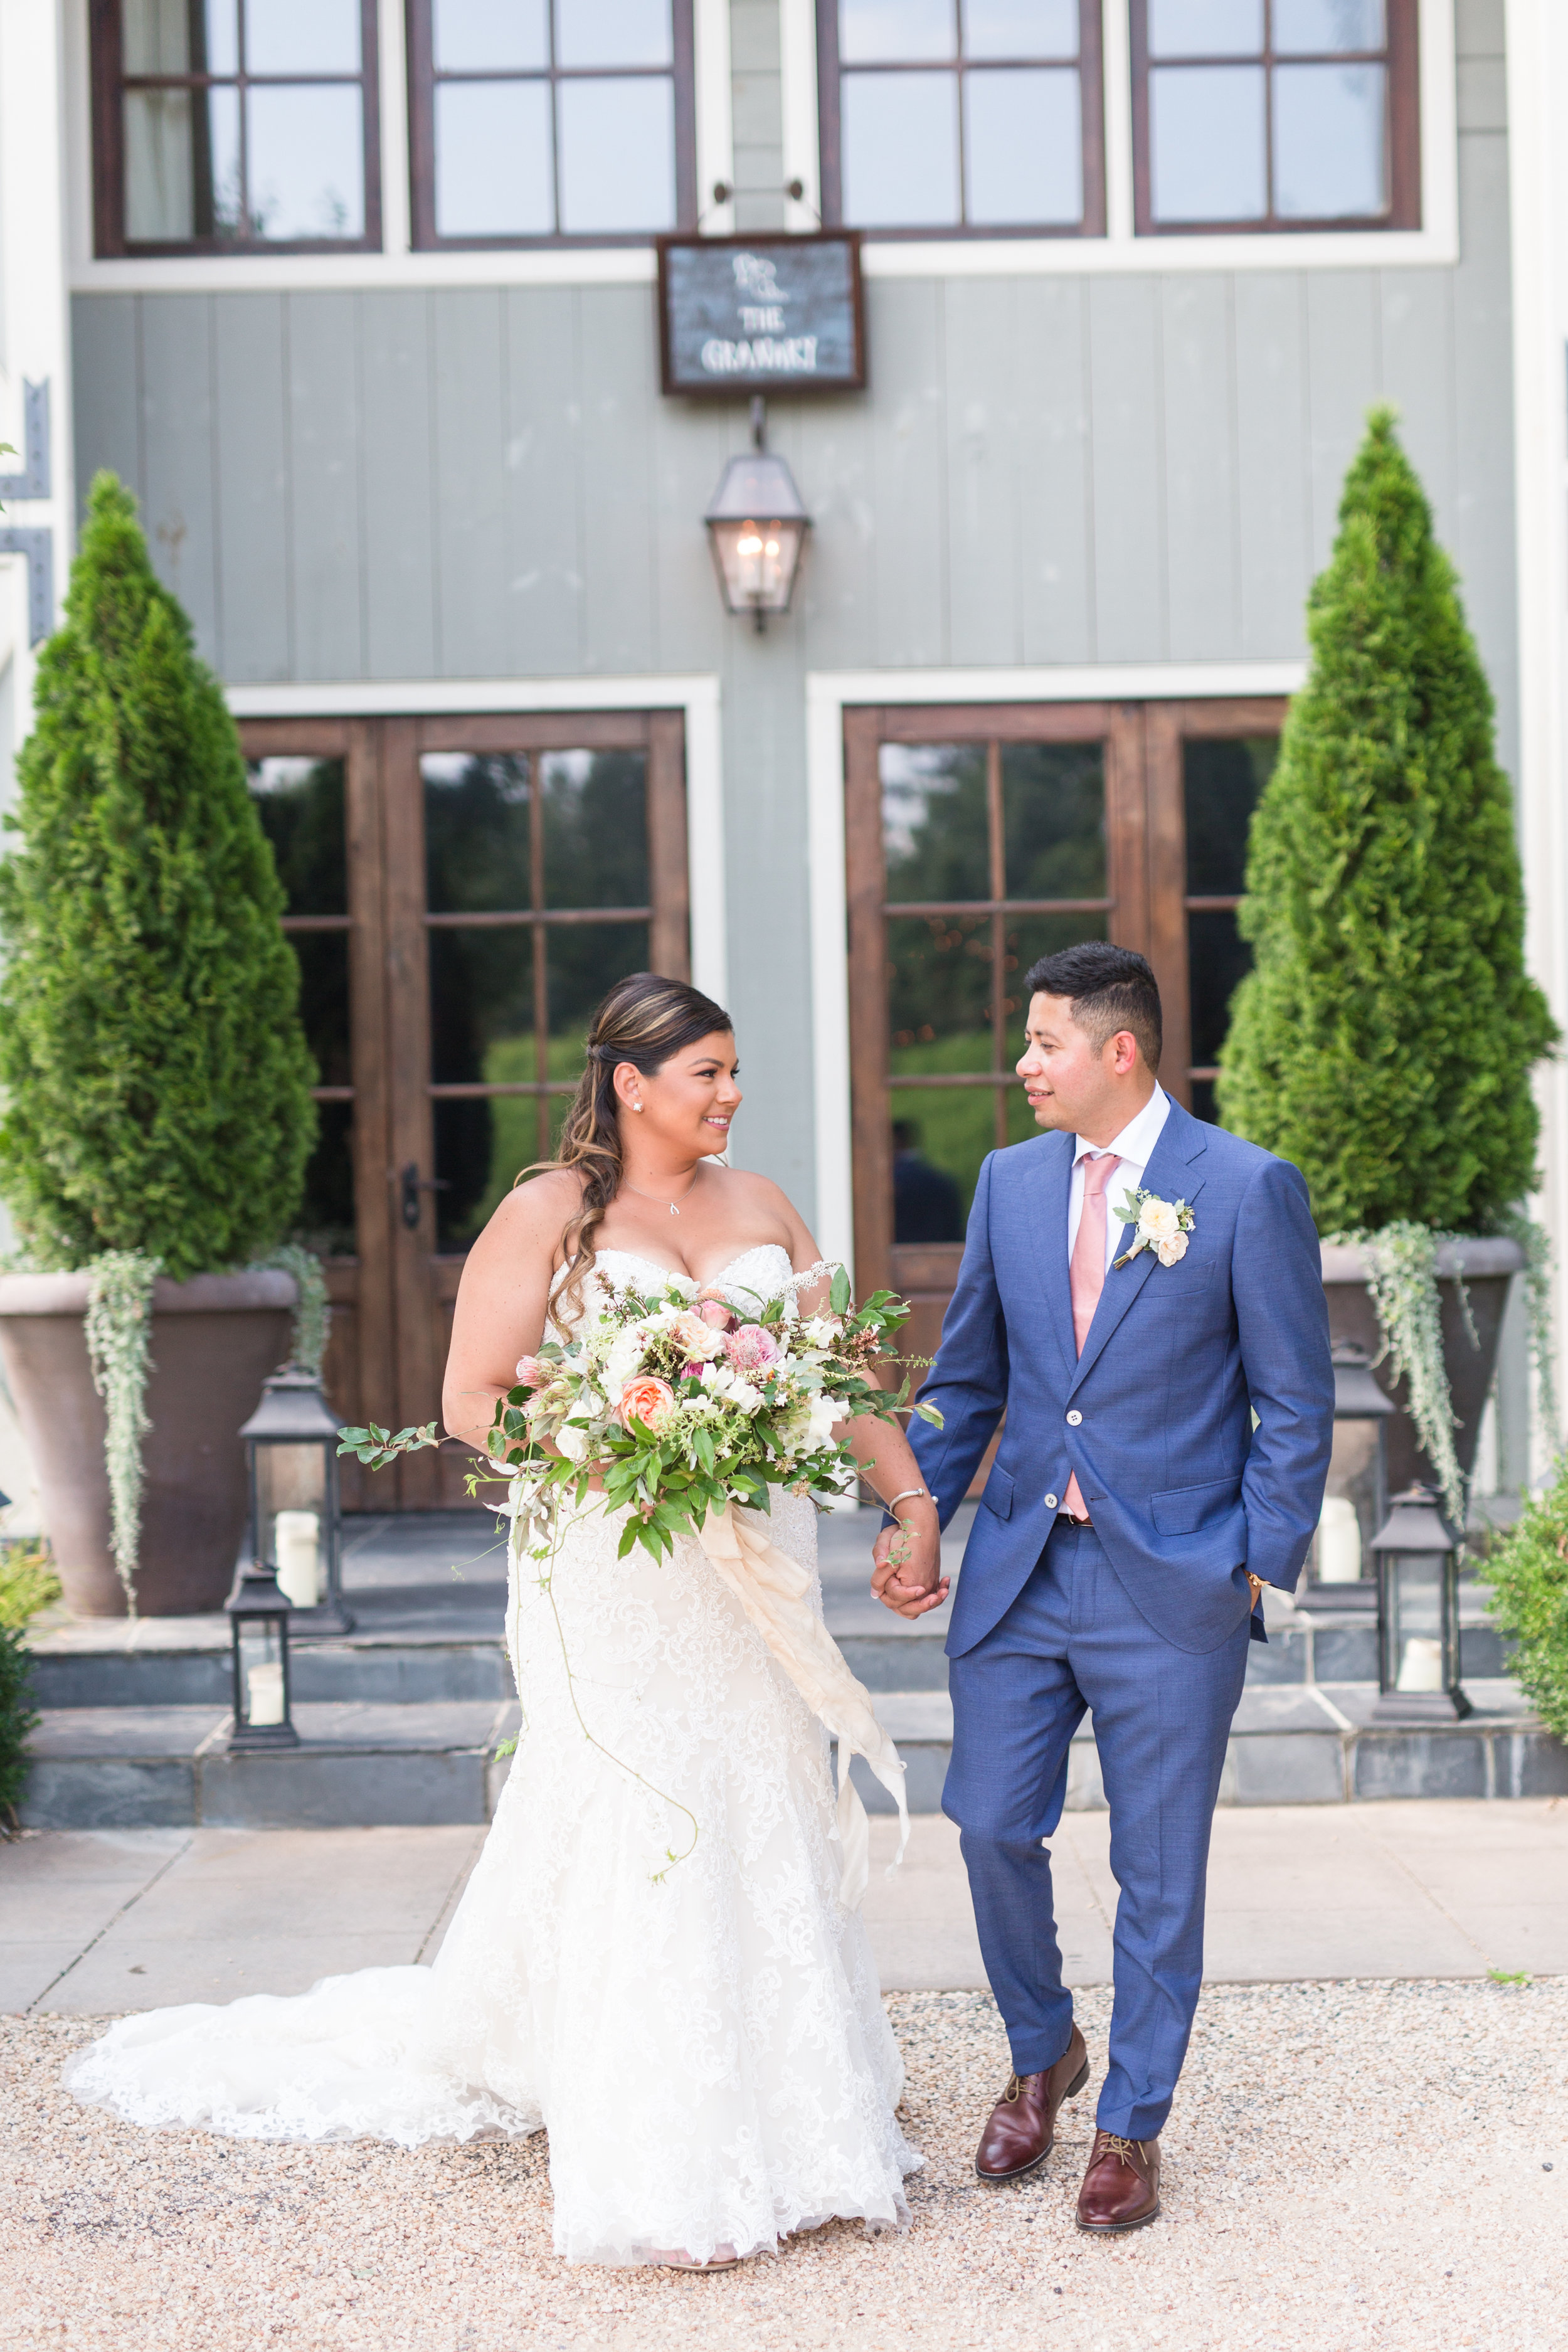 Wedding at Pippin Hill Farm and Vineyards in Charlottesville, Virginia || Central Virginia Wedding Photographer